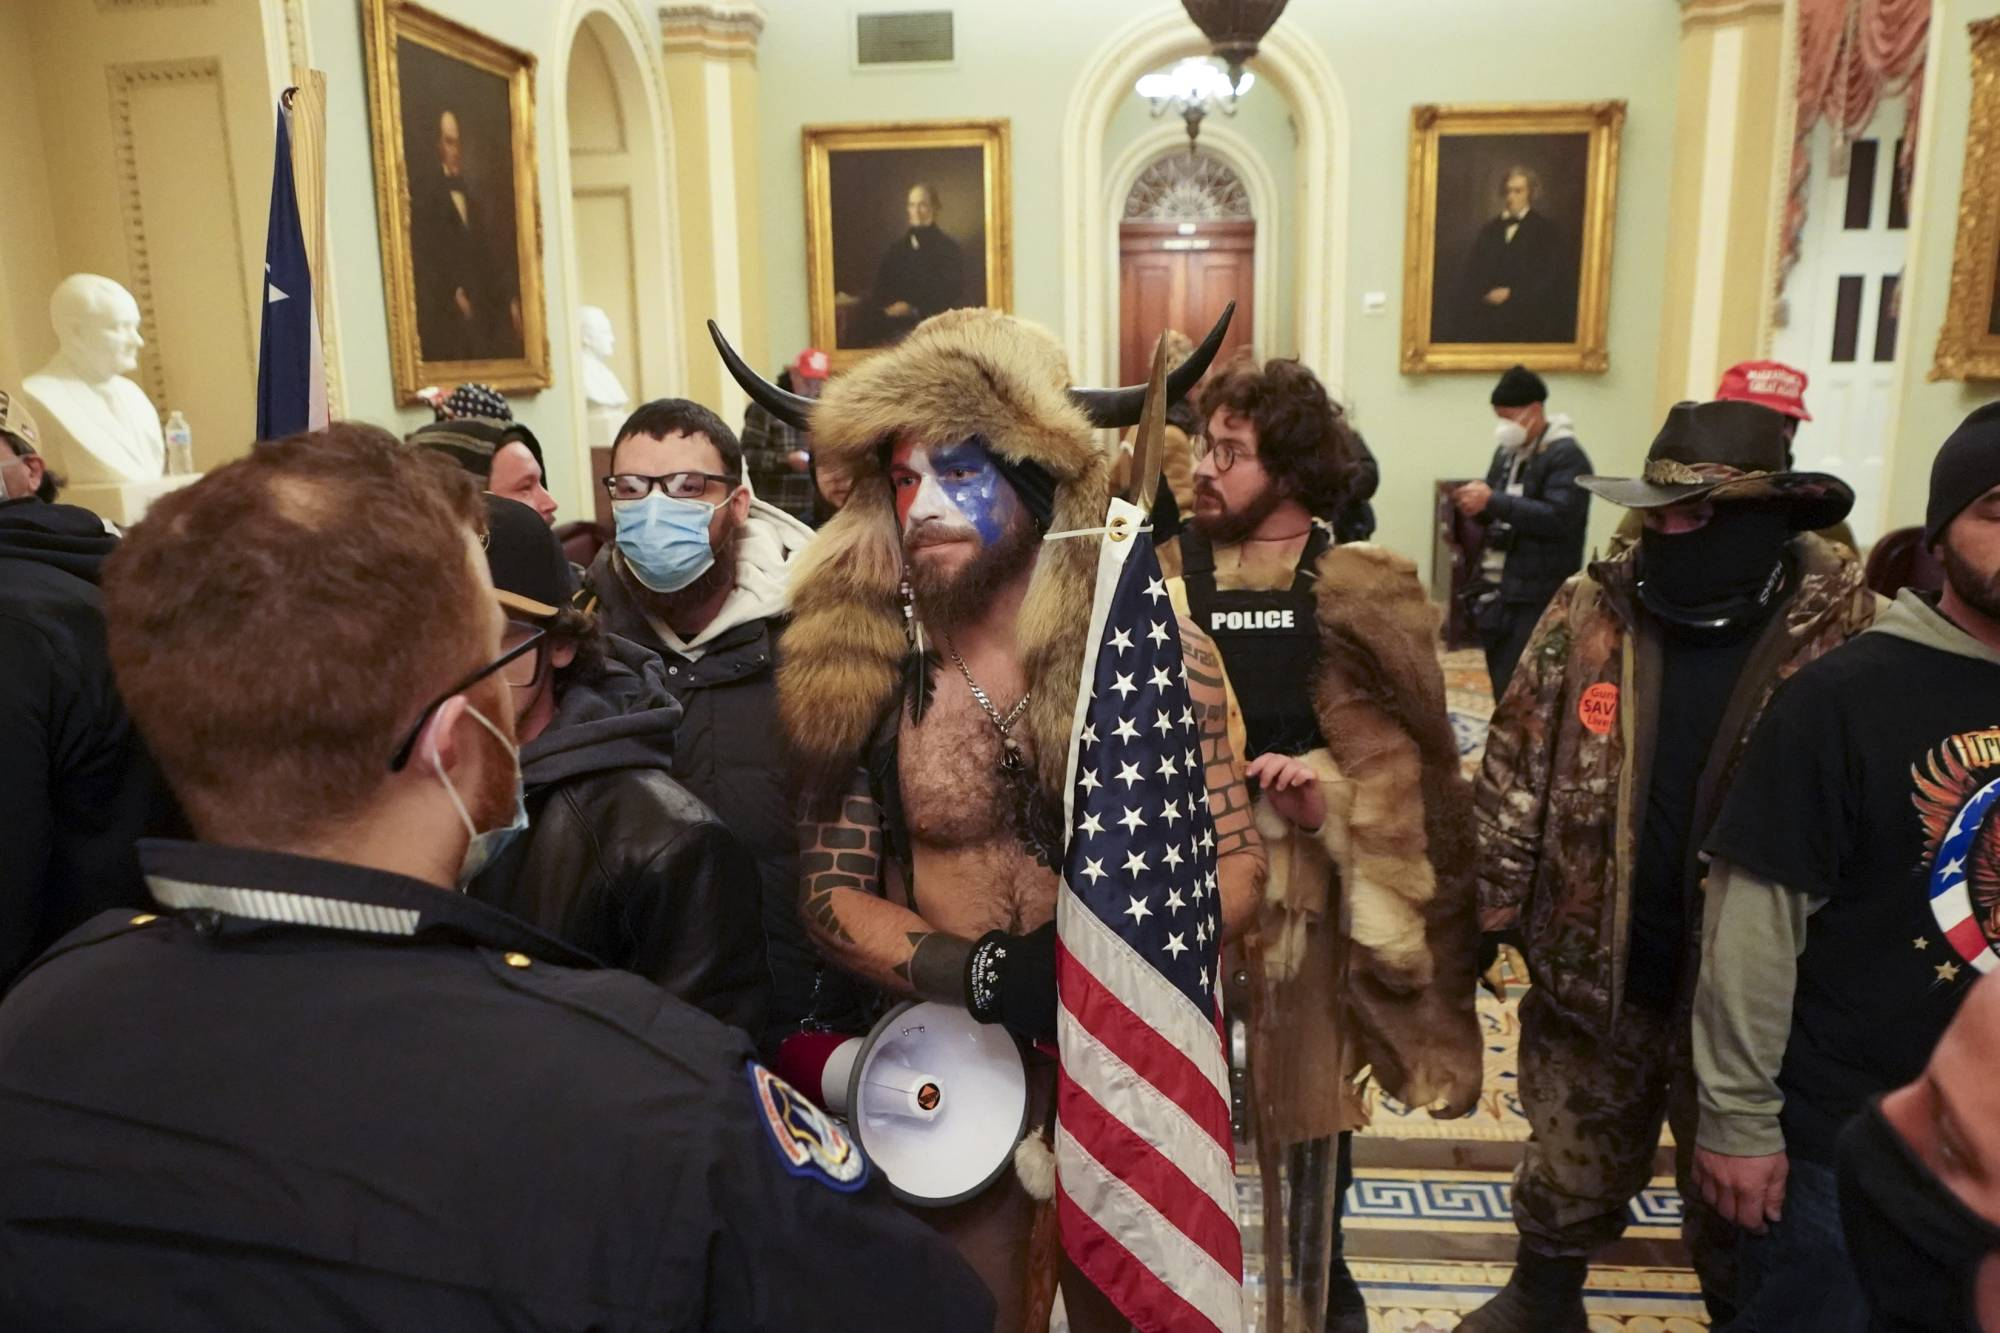 Rioters who swarmed the U.S. Capitol confront Capitol Police officers in the building, in Washington, on Wednesday. As people rushed inside, there was a strange mix of confusion and excitement, and the almost complete lack of police presence in the beginning amplified the feeling of lawlessness. | ERIN SCHAFF / THE NEW YORK TIMES